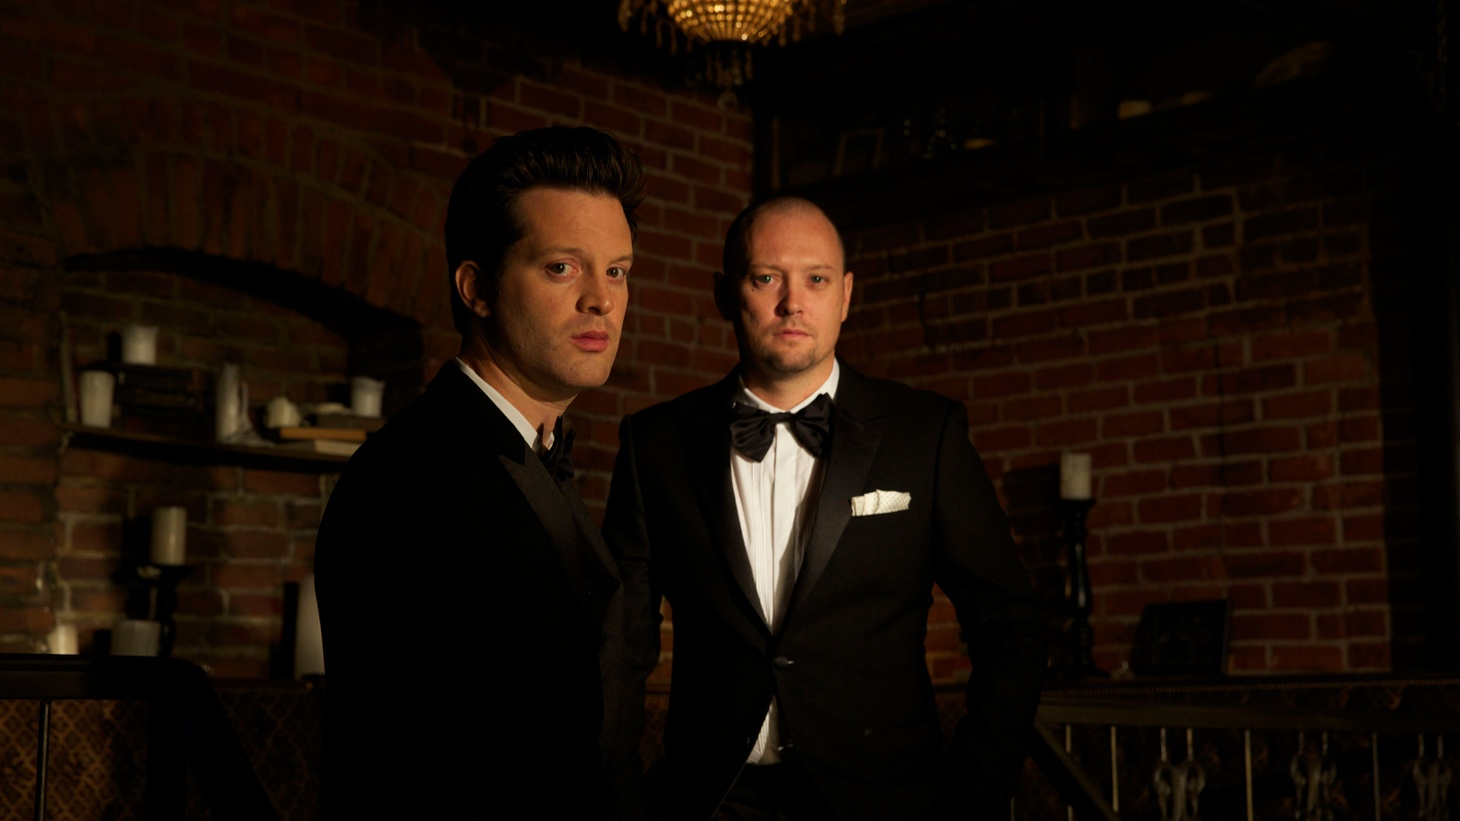 What happens when hip-hop producer Jake One pairs up with crooner Mayer Hawthorne? A side project called Tuxedo with a great boogie vibe.